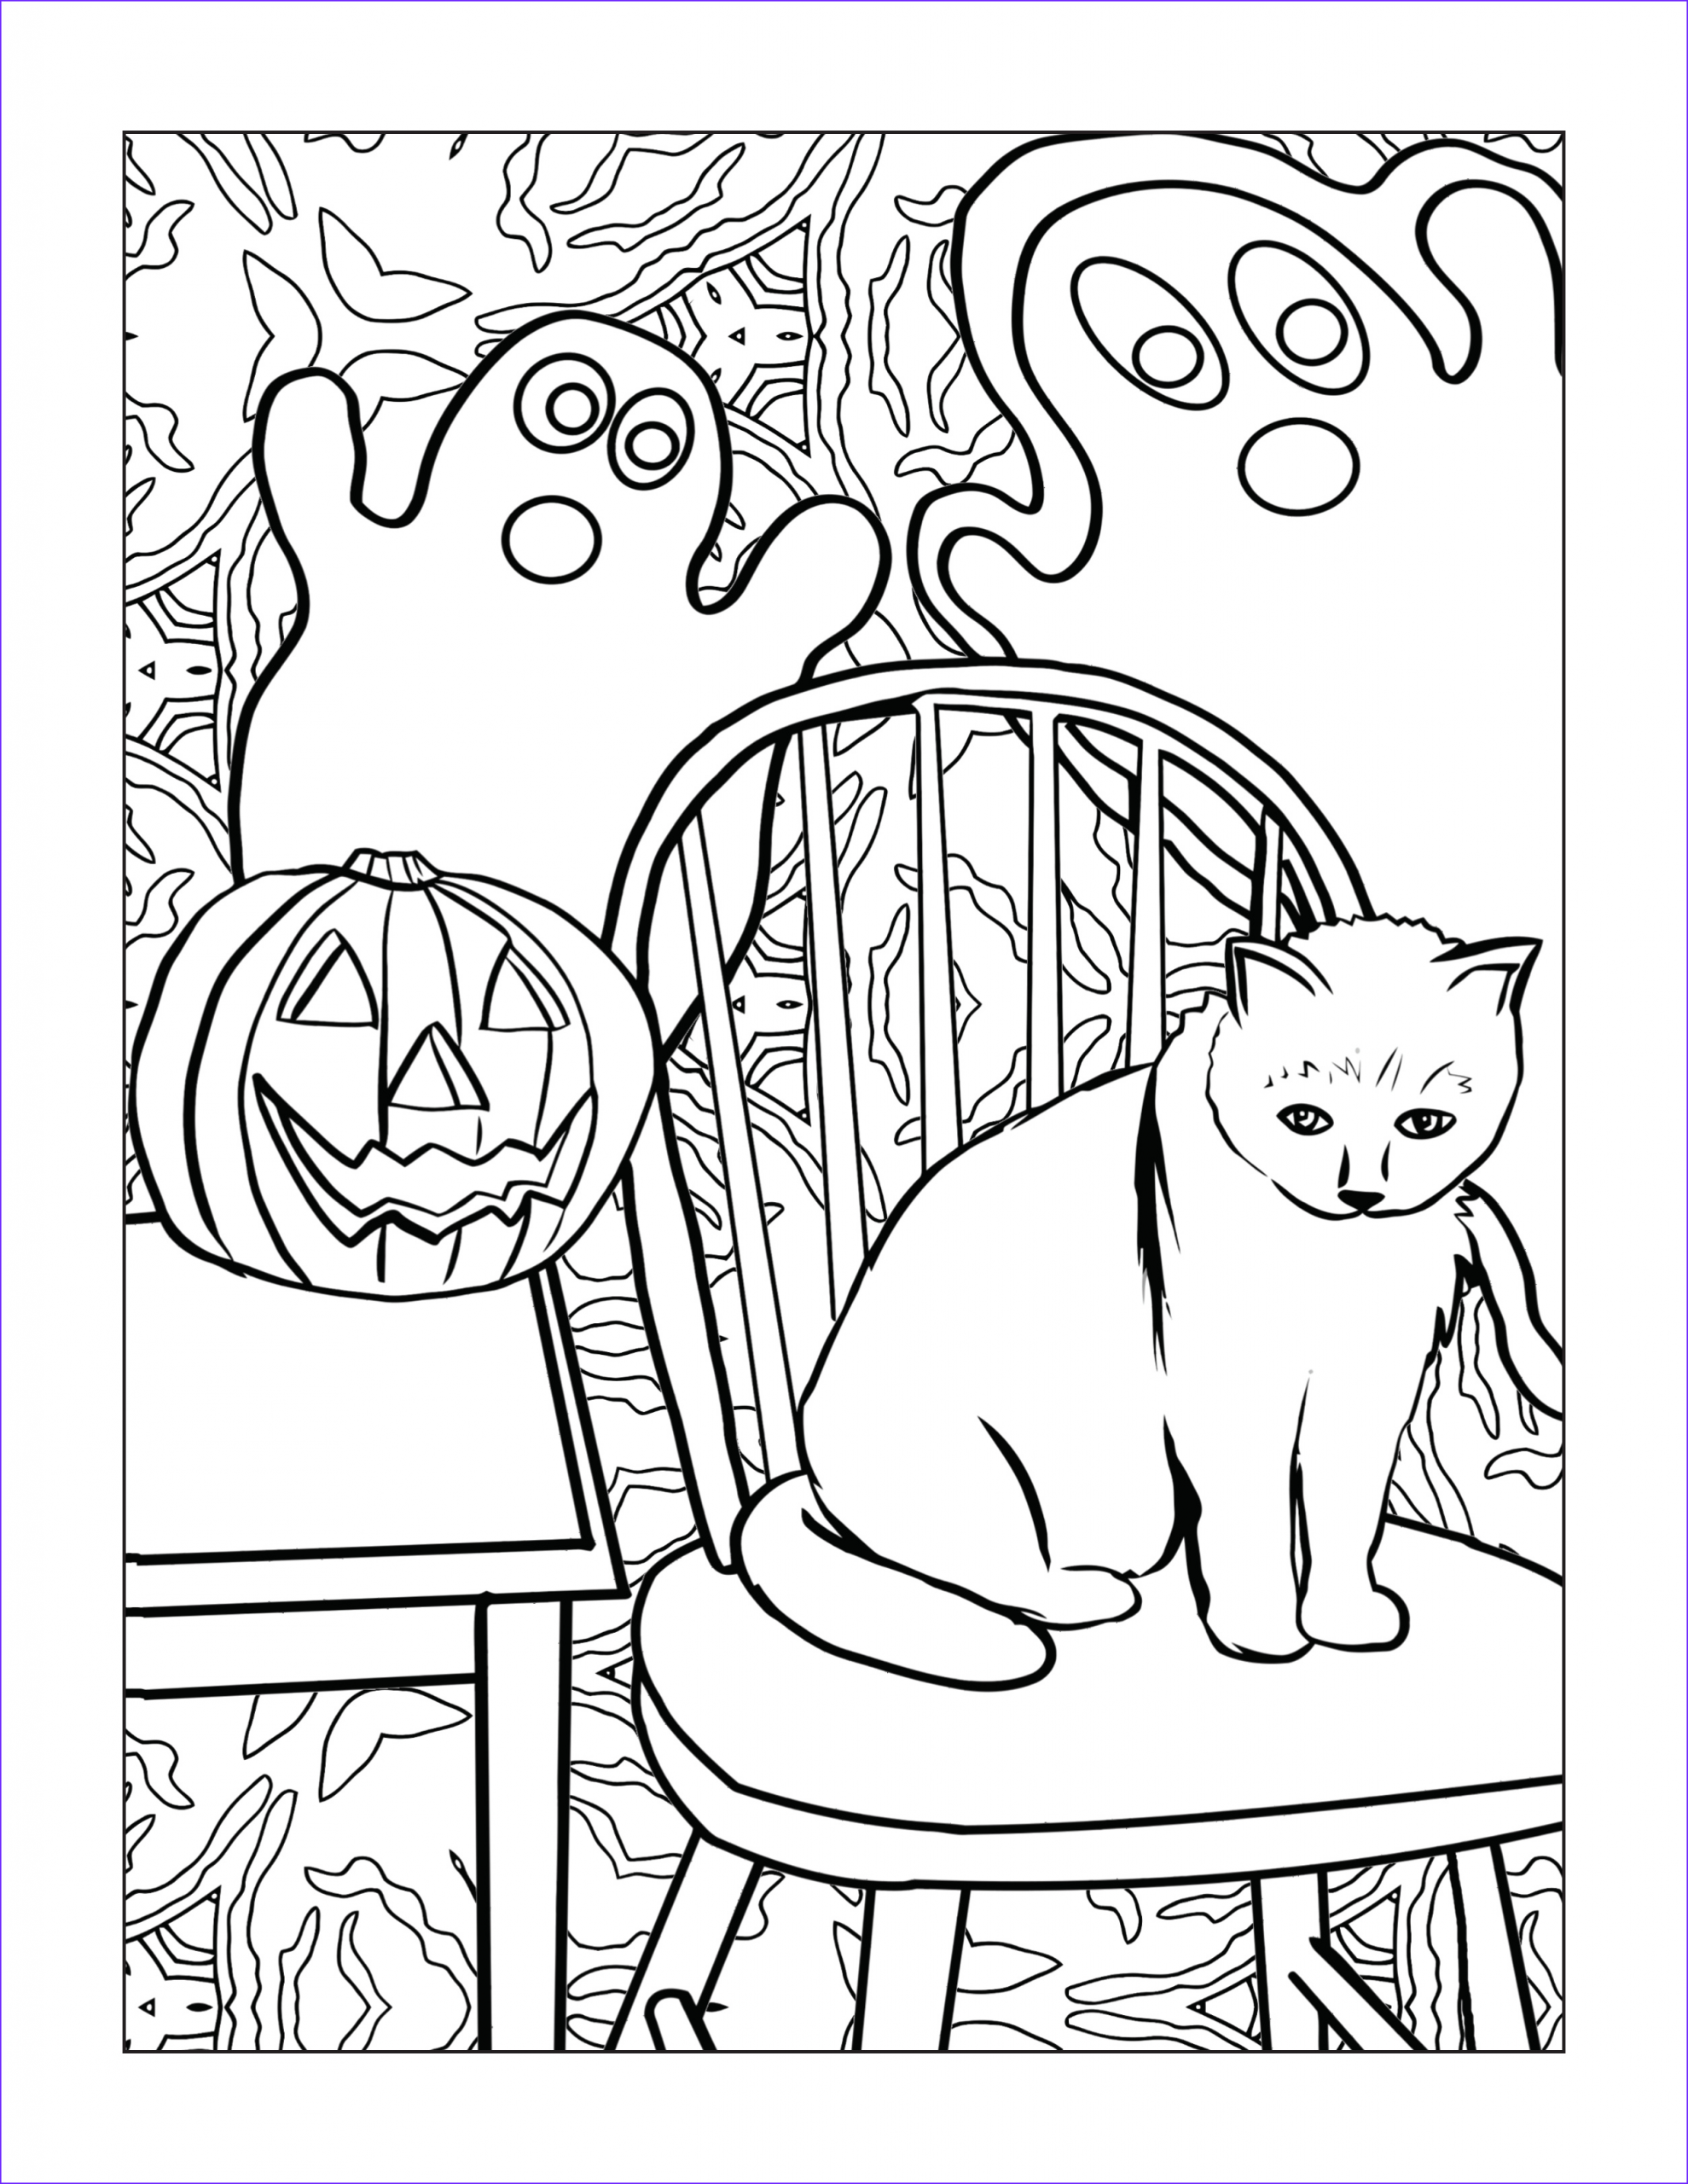 Halloween Coloring Sheet for Kids Awesome Photos Halloween Coloring Pages for Older Kids Gift Of Curiosity